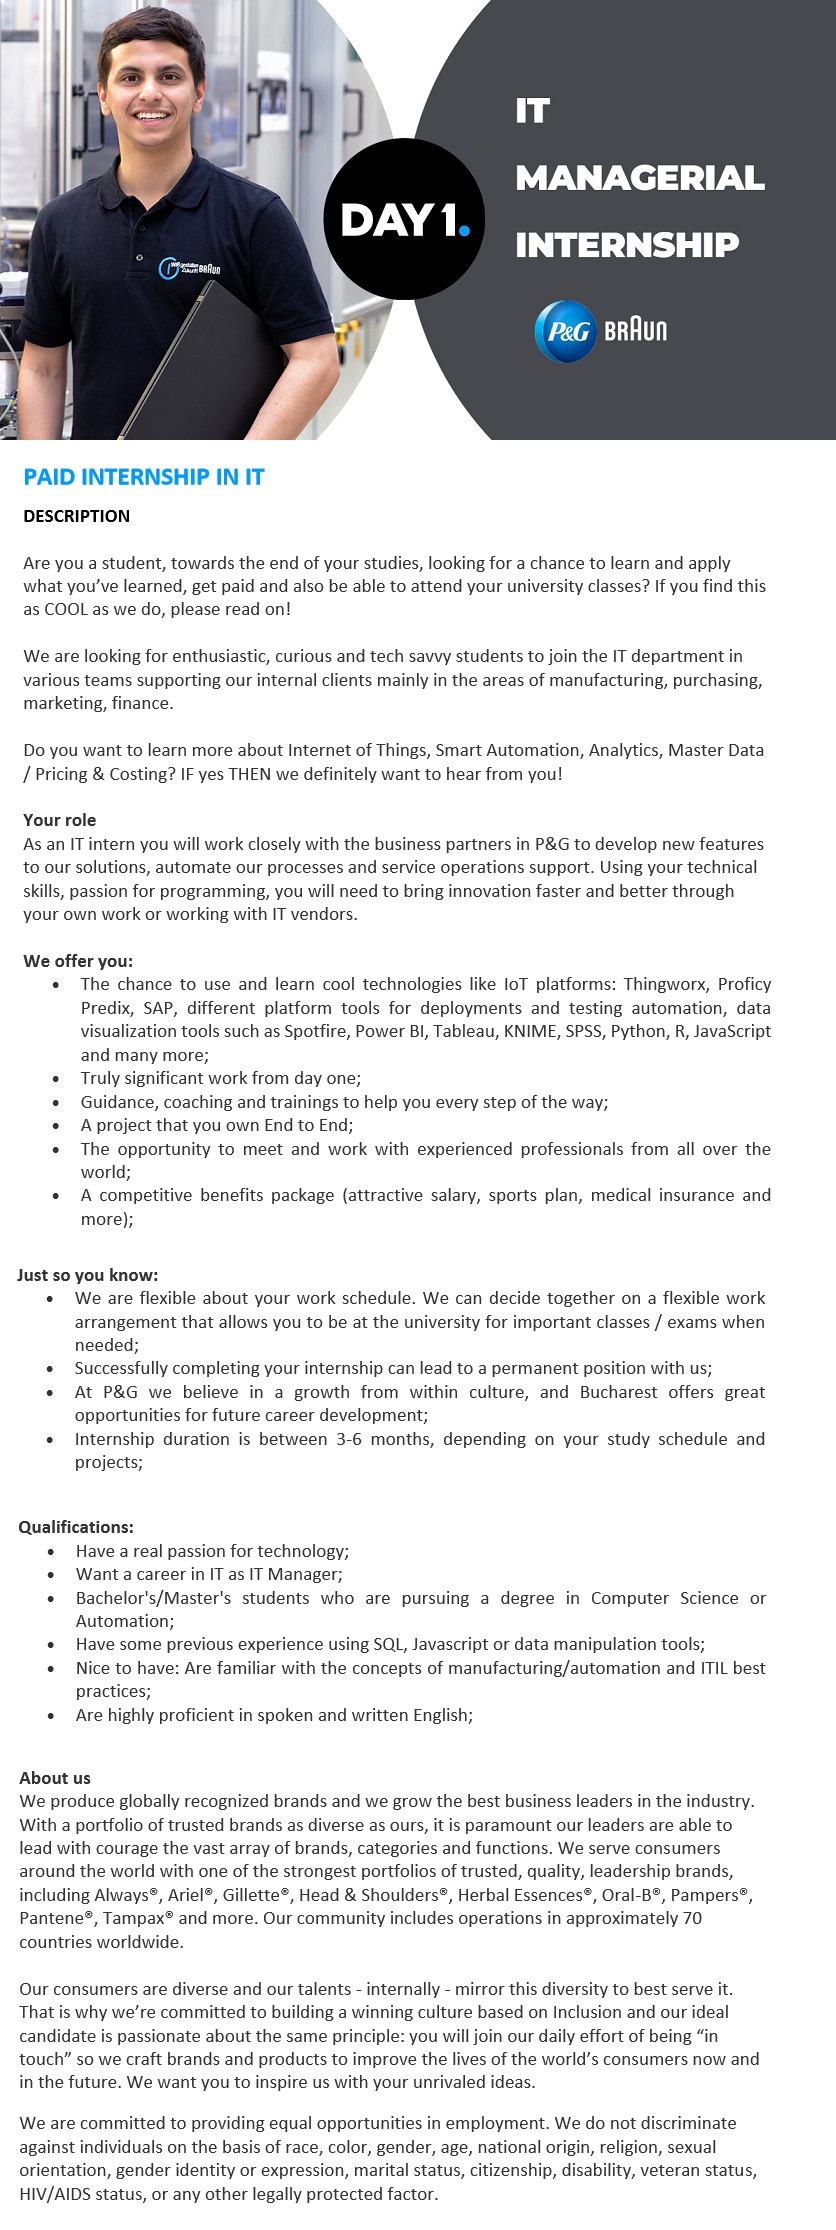 PAID INTERNSHIP IN IT  DESCRIPTION    Are you a student, towards the end of your studies, looking for a chance to learn and apply what you've learned, get paid and also be able to attend your university classes? If you find this as COOL as we do, please read on!    We are looking for enthusiastic, curious and tech savvy students to join the IT department in various teams supporting our internal clients mainly in the areas of manufacturing, purchasing, marketing, finance.    Do you want to learn more about Internet of Things, Smart Automation, Analytics, Master Data / Pricing & Costing? IF yes THEN we definitely want to hear from you!    Your role As an IT intern you will work closely with the business partners in P&G to develop new features to our solutions, automate our processes and service operations support. Using your technical skills, passion for programming, you will need to bring innovation faster and better through your own work or working with IT vendors.    We offer you: • The chance to use and learn cool technologies like IoT platforms: Thingworx, Proficy Predix, SAP, different platform tools for deployments and testing automation, data visualization tools such as Spotfire, Power BI, Tableau, KNIME, SPSS, Python, R, JavaScript and many more; • Truly significant work from day one; • Guidance, coaching and trainings to help you every step of the way; • A project that you own End to End; • The opportunity to meet and work with experienced professionals from all over the world; • A competitive benefits package (attractive salary, sports plan, medical insurance and more);    Just so you know: • We are flexible about your work schedule. We can decide together on a flexible work arrangement that allows you to be at the university for important classes / exams when needed; • Successfully completing your internship can lead to a permanent position with us; • At P&G we believe in a growth from within culture, and Bucharest offers great opportunities for future car